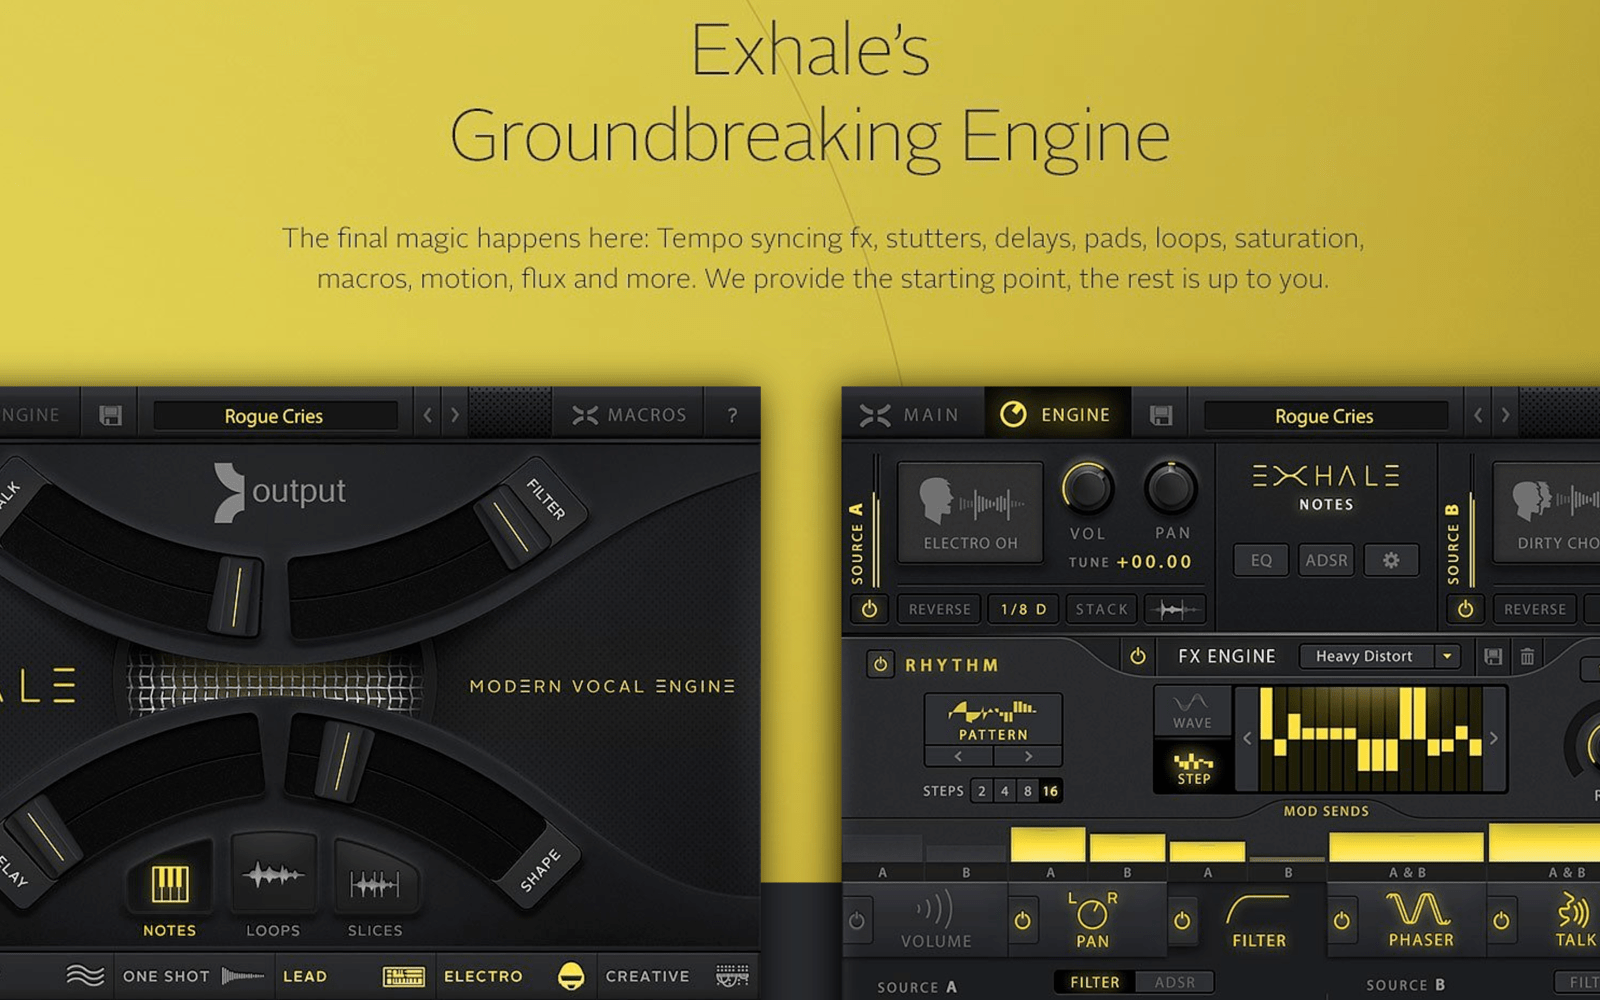 Logic Pros Breathe Some Life Into Your Tracks W Exhale Vocal Electronic Selector For 8 Sources Engine